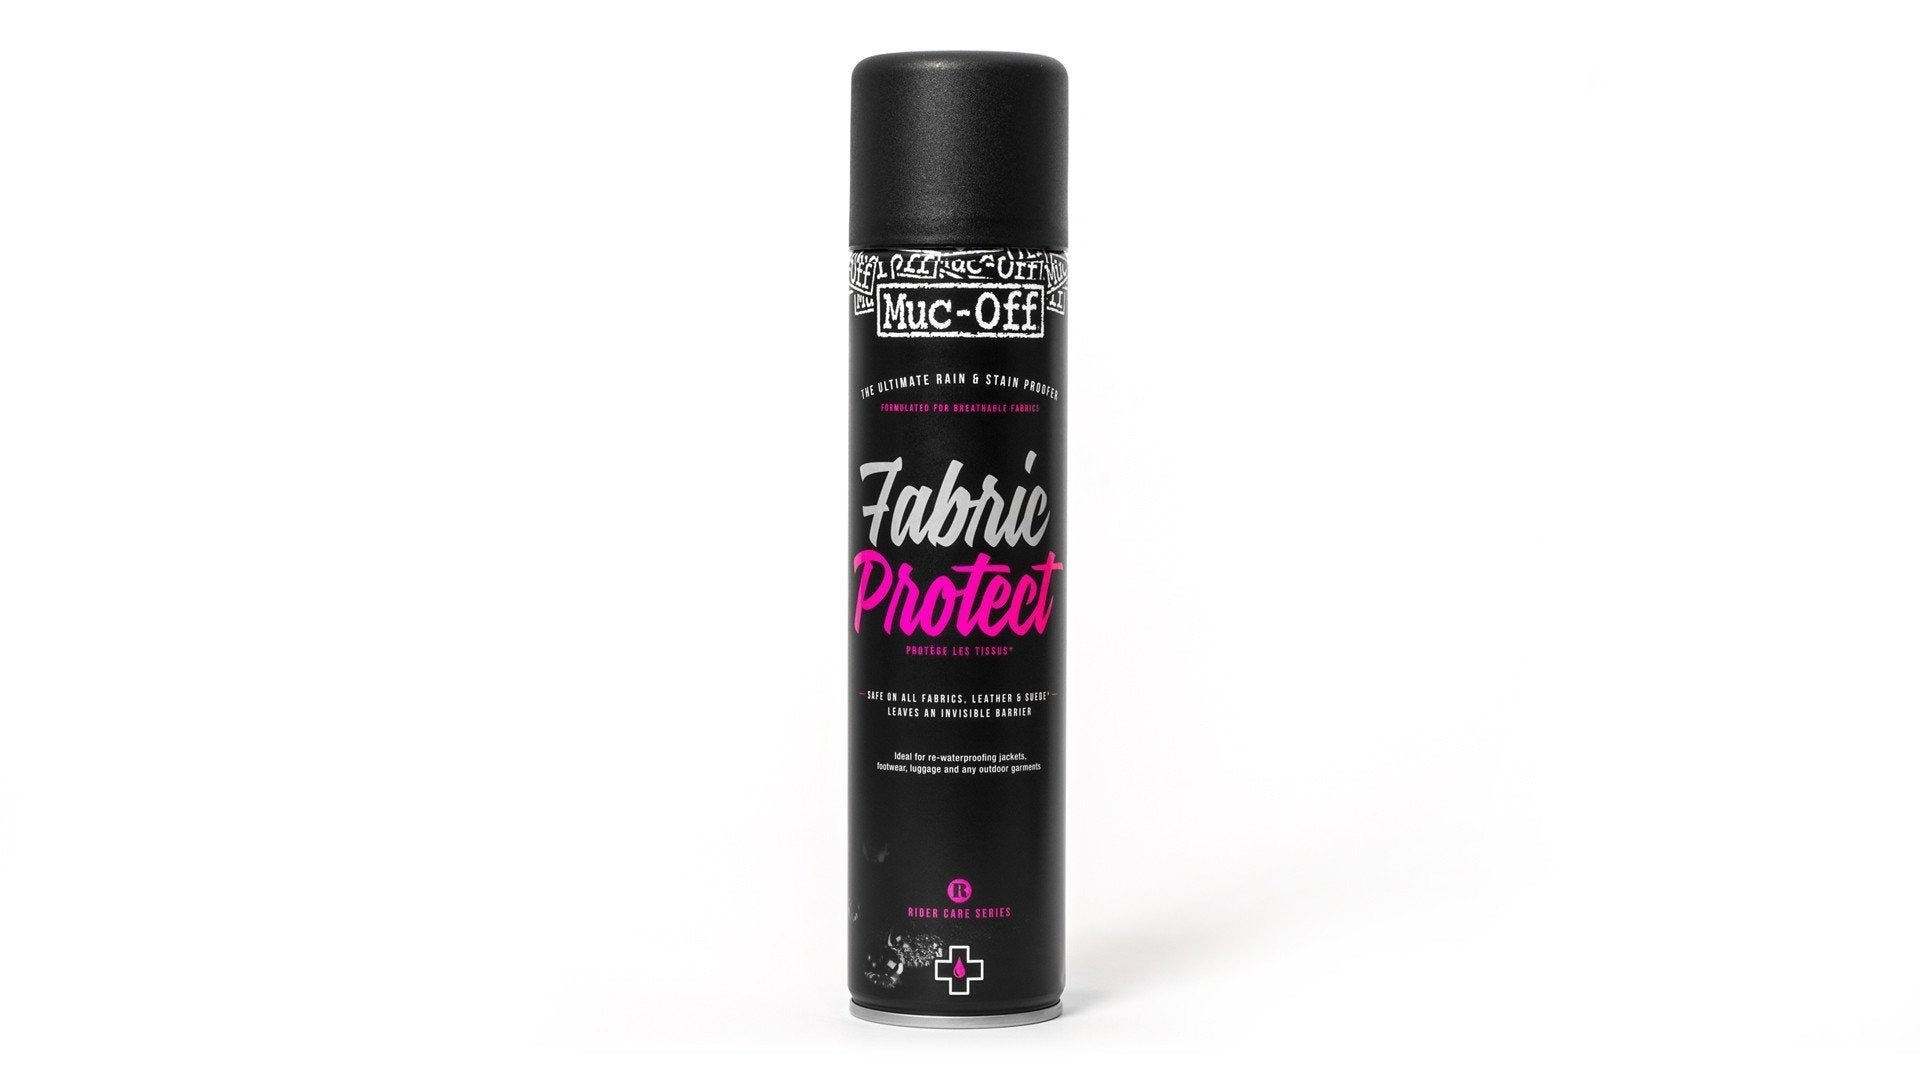 Fabric Protect - Muc-Off